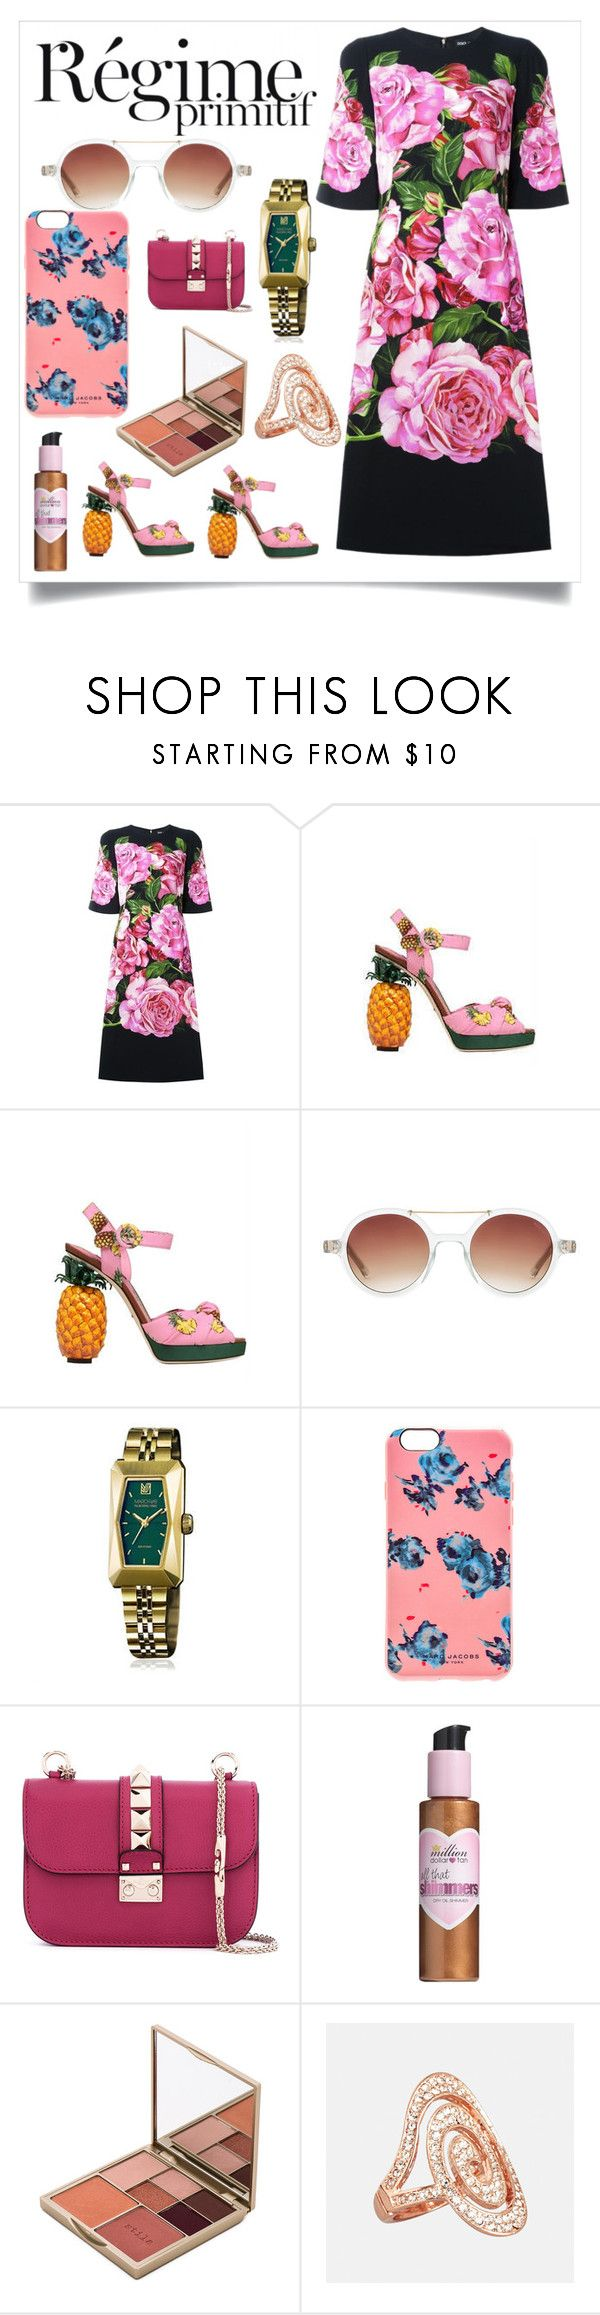 """big sale offer"" by denisee-denisee ❤ liked on Polyvore featuring Dolce&Gabbana, Dsquared2, Komono, March LA.B, Marc Jacobs, Valentino, Million Dollar Tan, Stila, Avenue and Anja"